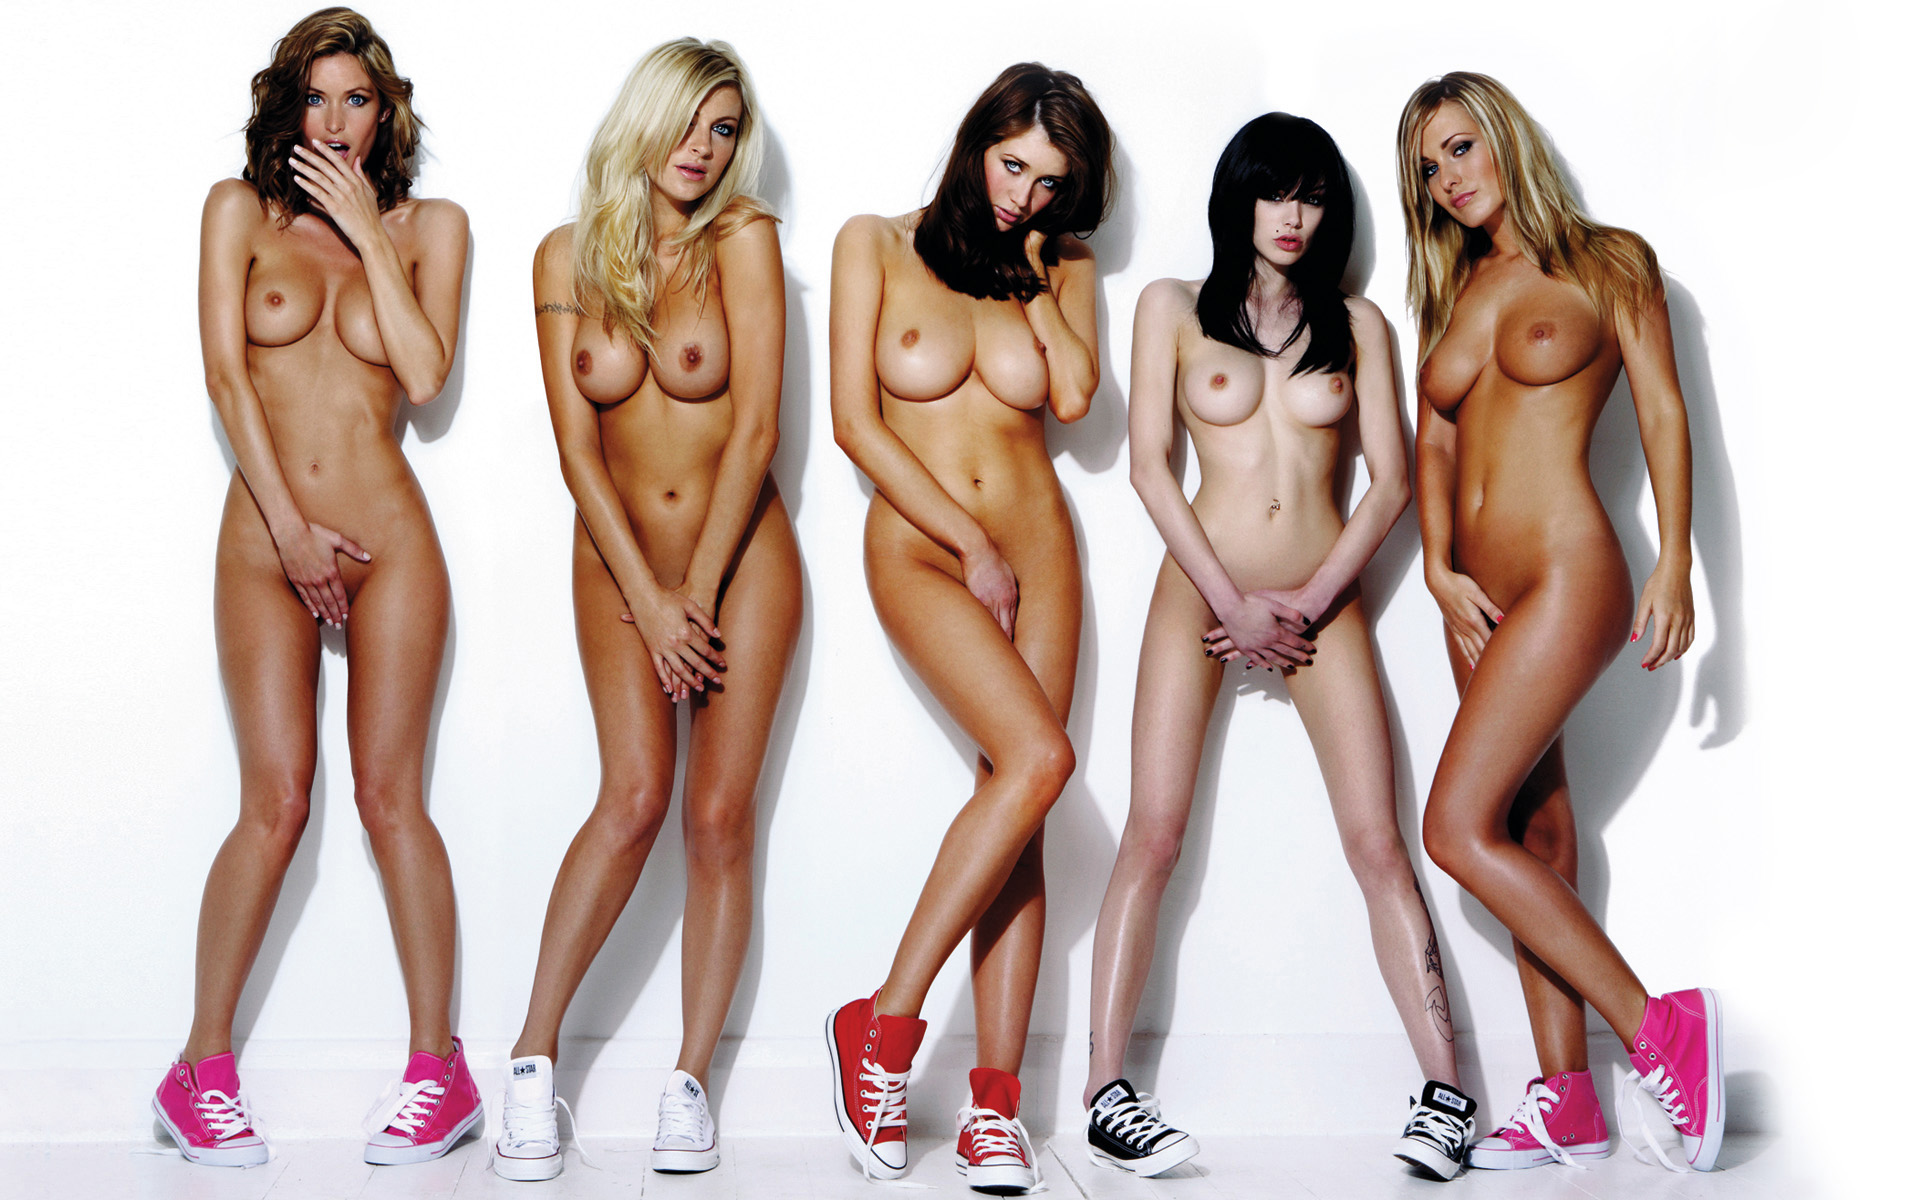 Page 3 girls nude groups